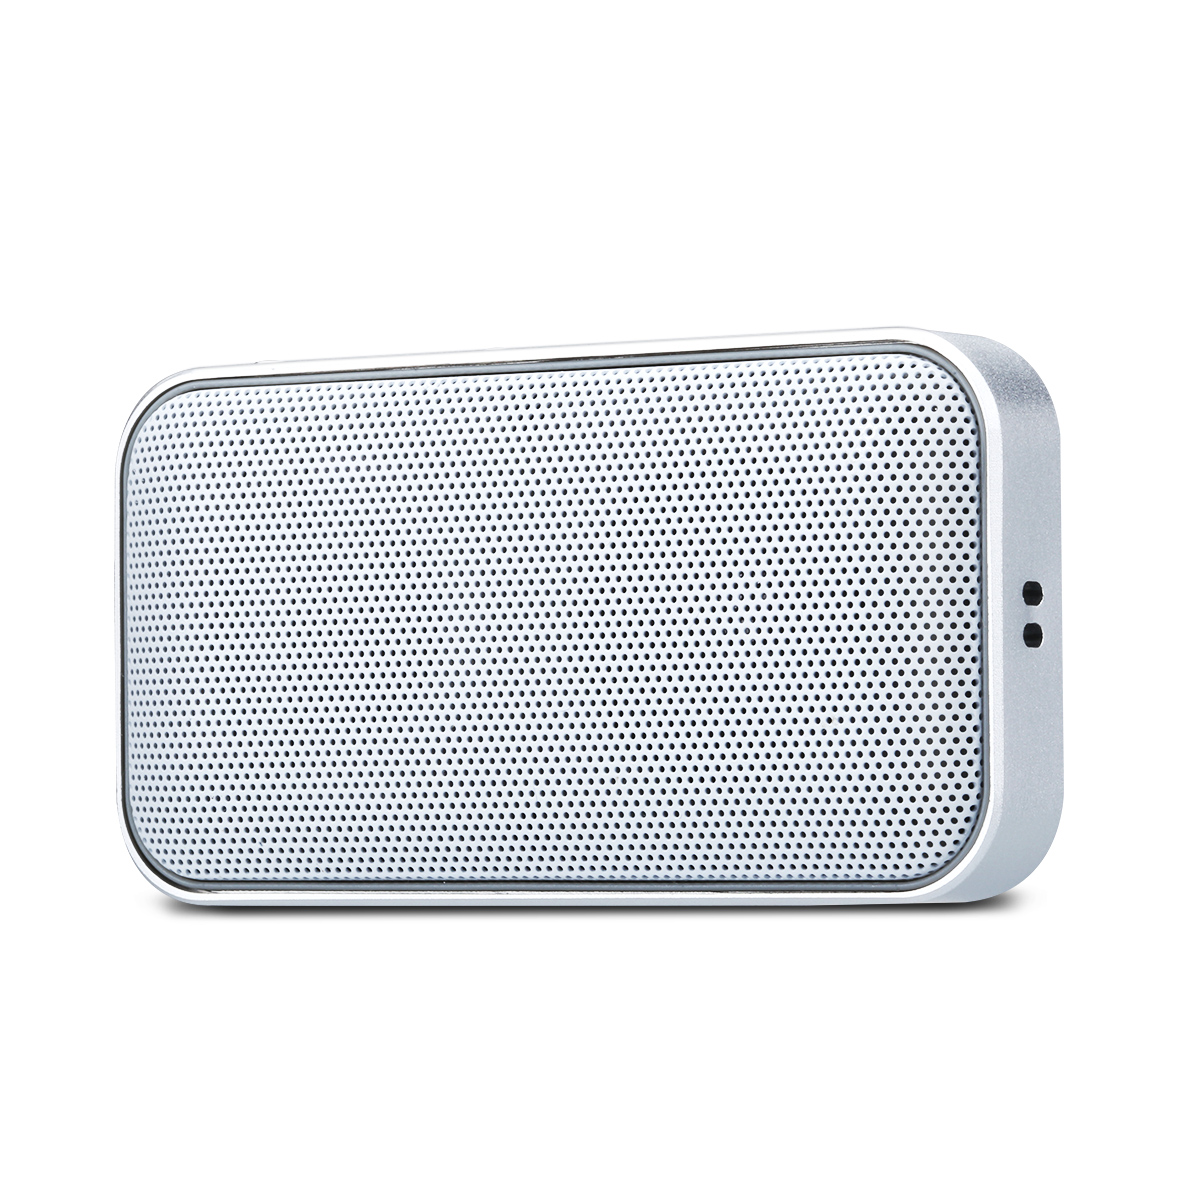 AEC BT 209 Wireless Bluetooth 4.2 Mini Loudspeaker With Built-In Microphone Support TF Card